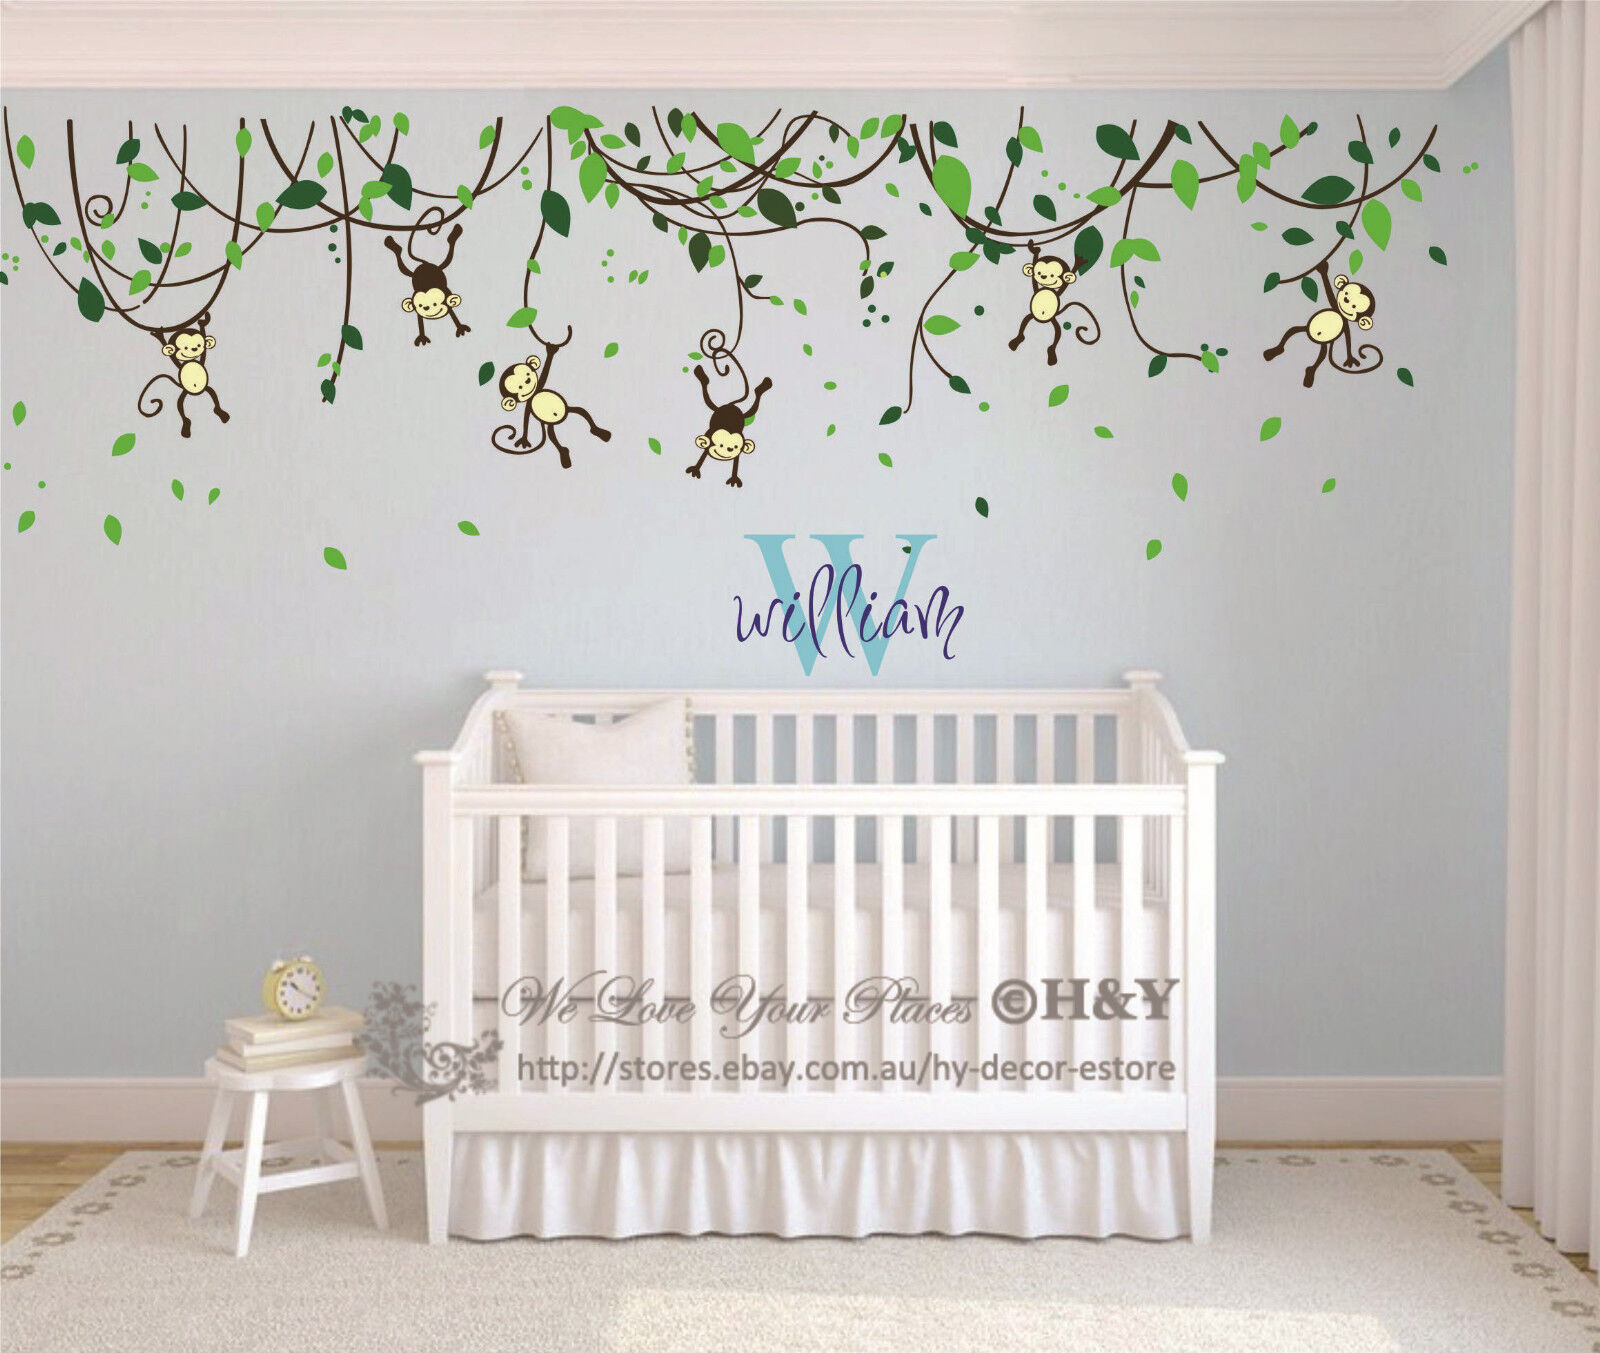 custom personalised name monkey vine wall art stickers kids received package 4 sheets wall sticker personalised name please add ebay message about one kids name when check out